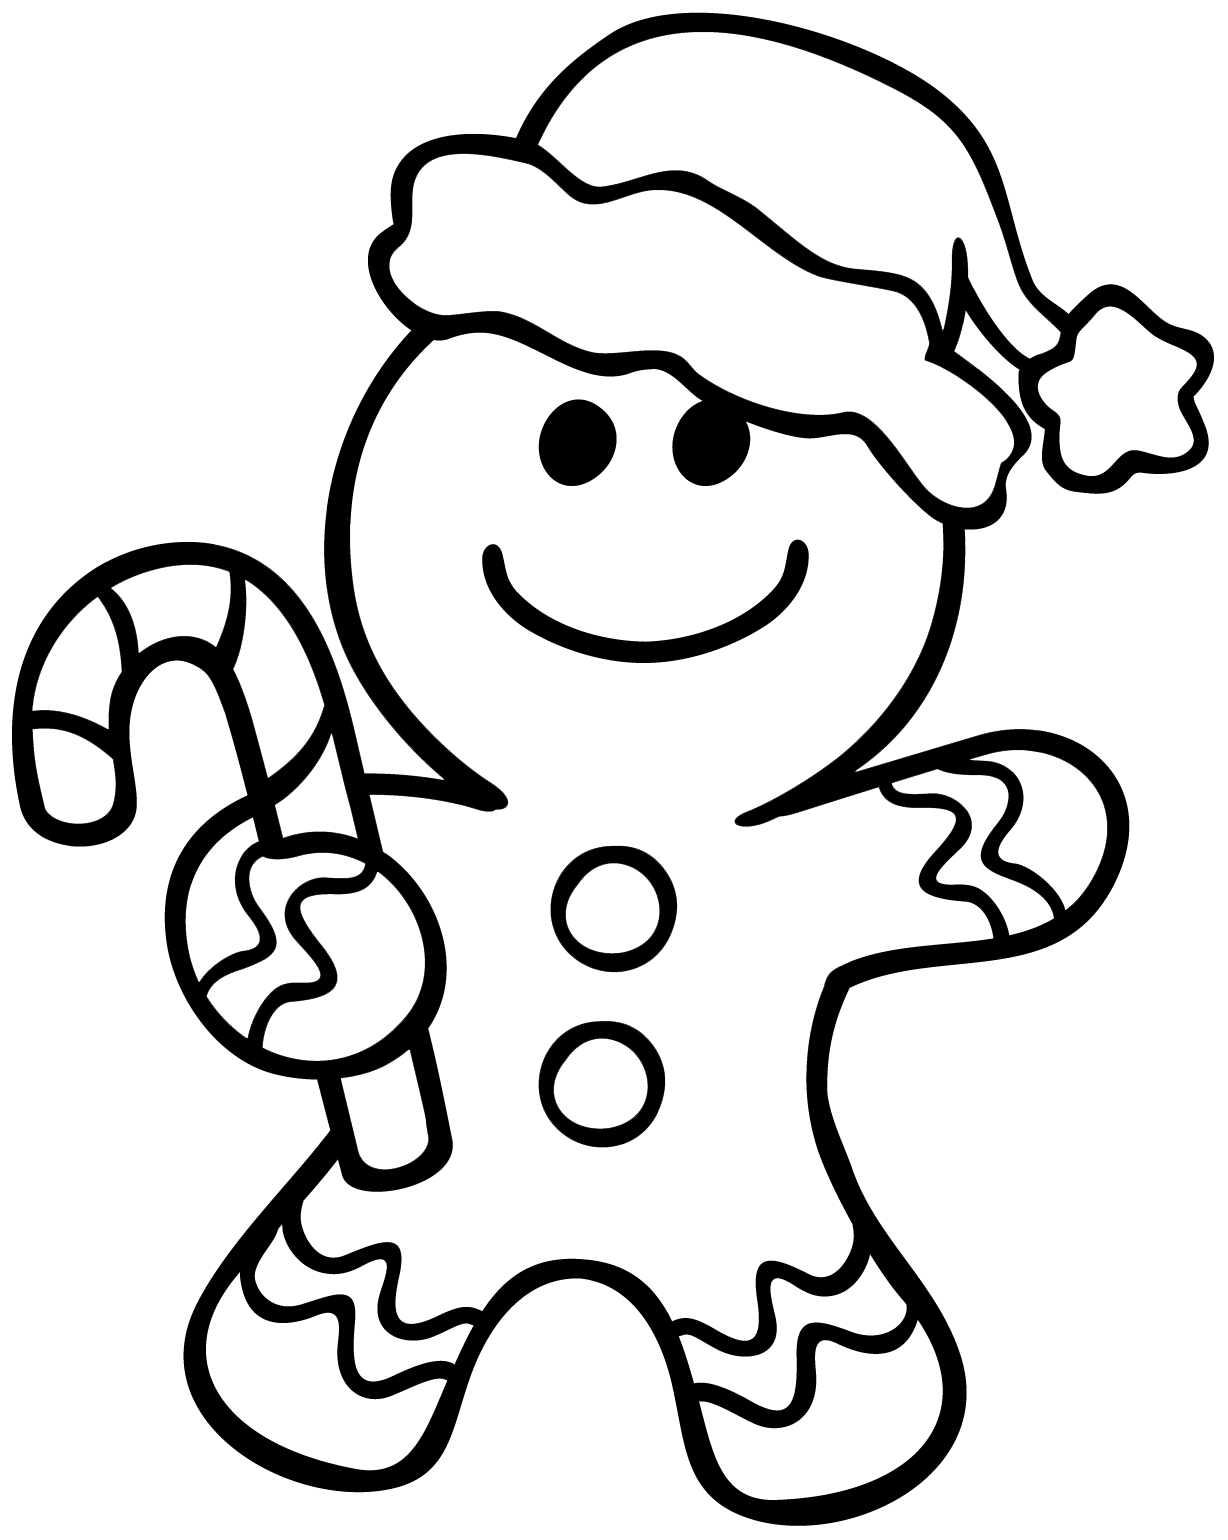 christmas coloring pages to print free gingerbread man coloring pages to download and print for free print christmas pages to coloring free